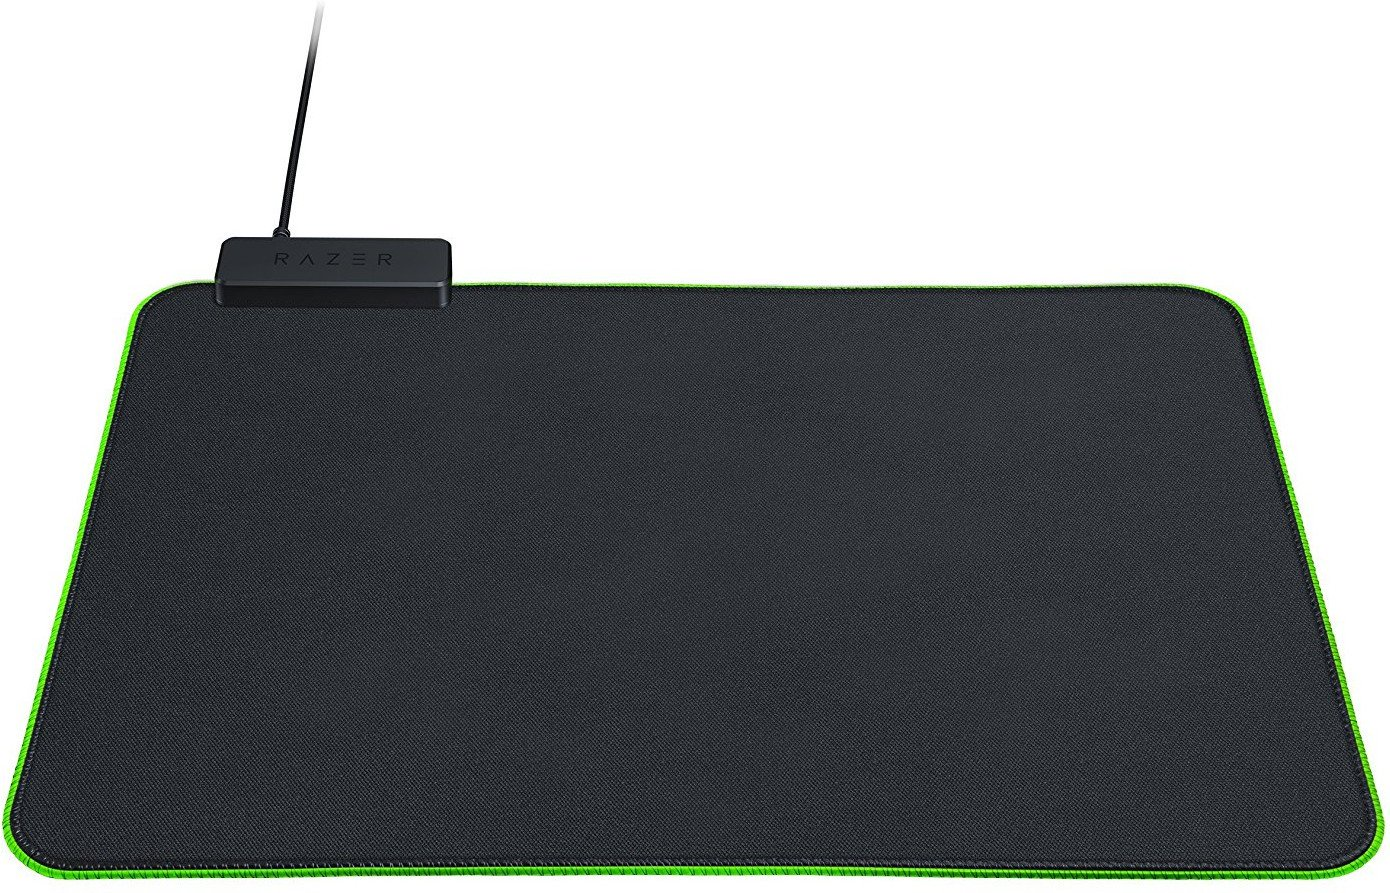 лучшая цена Коврик Razer Goliathus Chroma - Gaming Mouse Mat - FRML Packaging черный